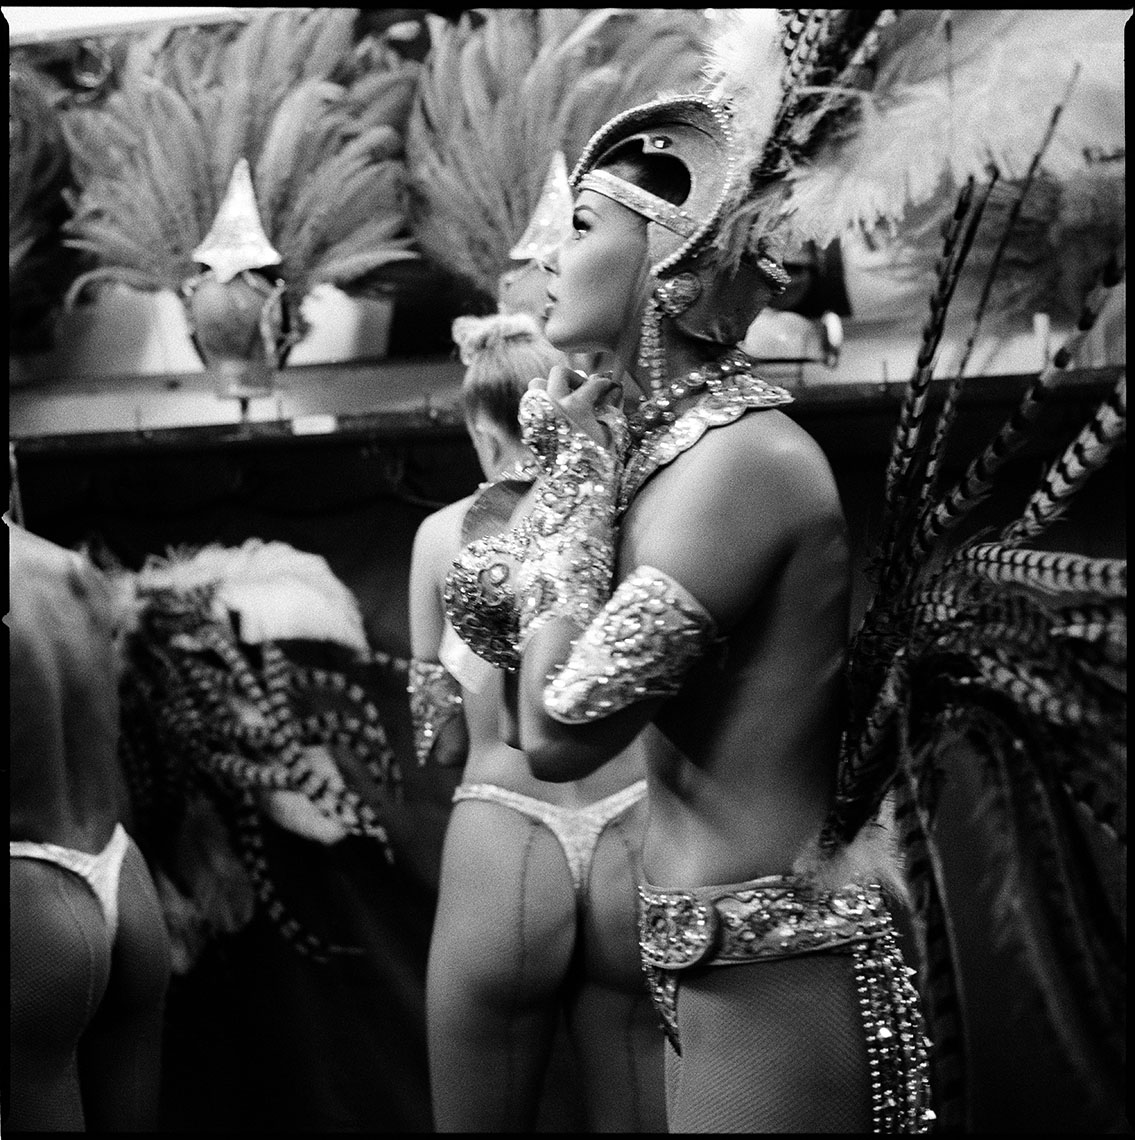 Backstage at Le Moulin Rouge in Paris